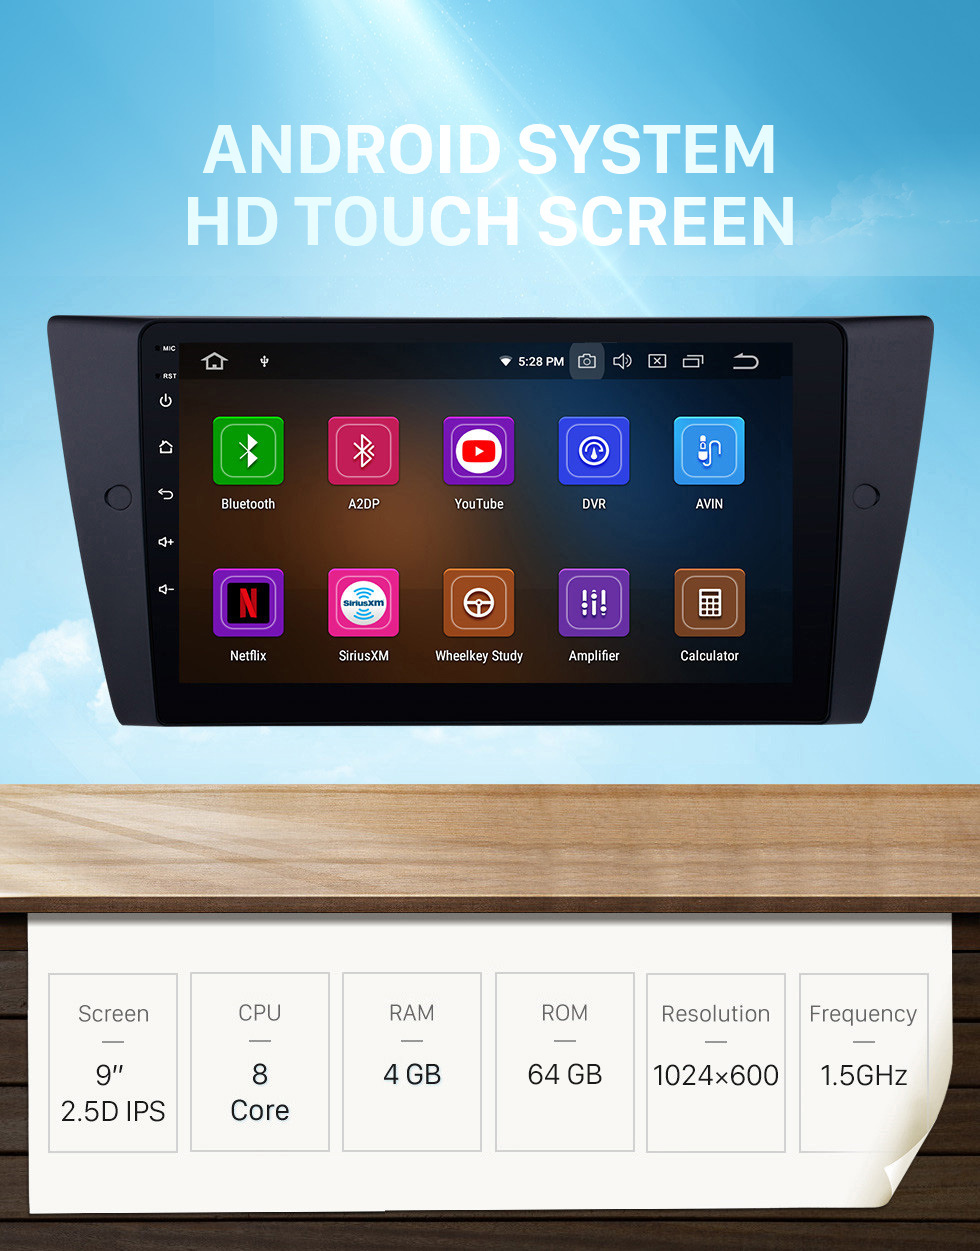 Seicane All in one Android 10.0 9 inch HD Touchscreen Radio for 2005-2012 BMW 3 Series E90 E91 E92 E93 316i 318i 320i 320si 323i 325i 328i 330i 335i 335is M3 316d 318d 320d 325d 330d 335d with GPS Navigation system WIFI tv bluetooth usb